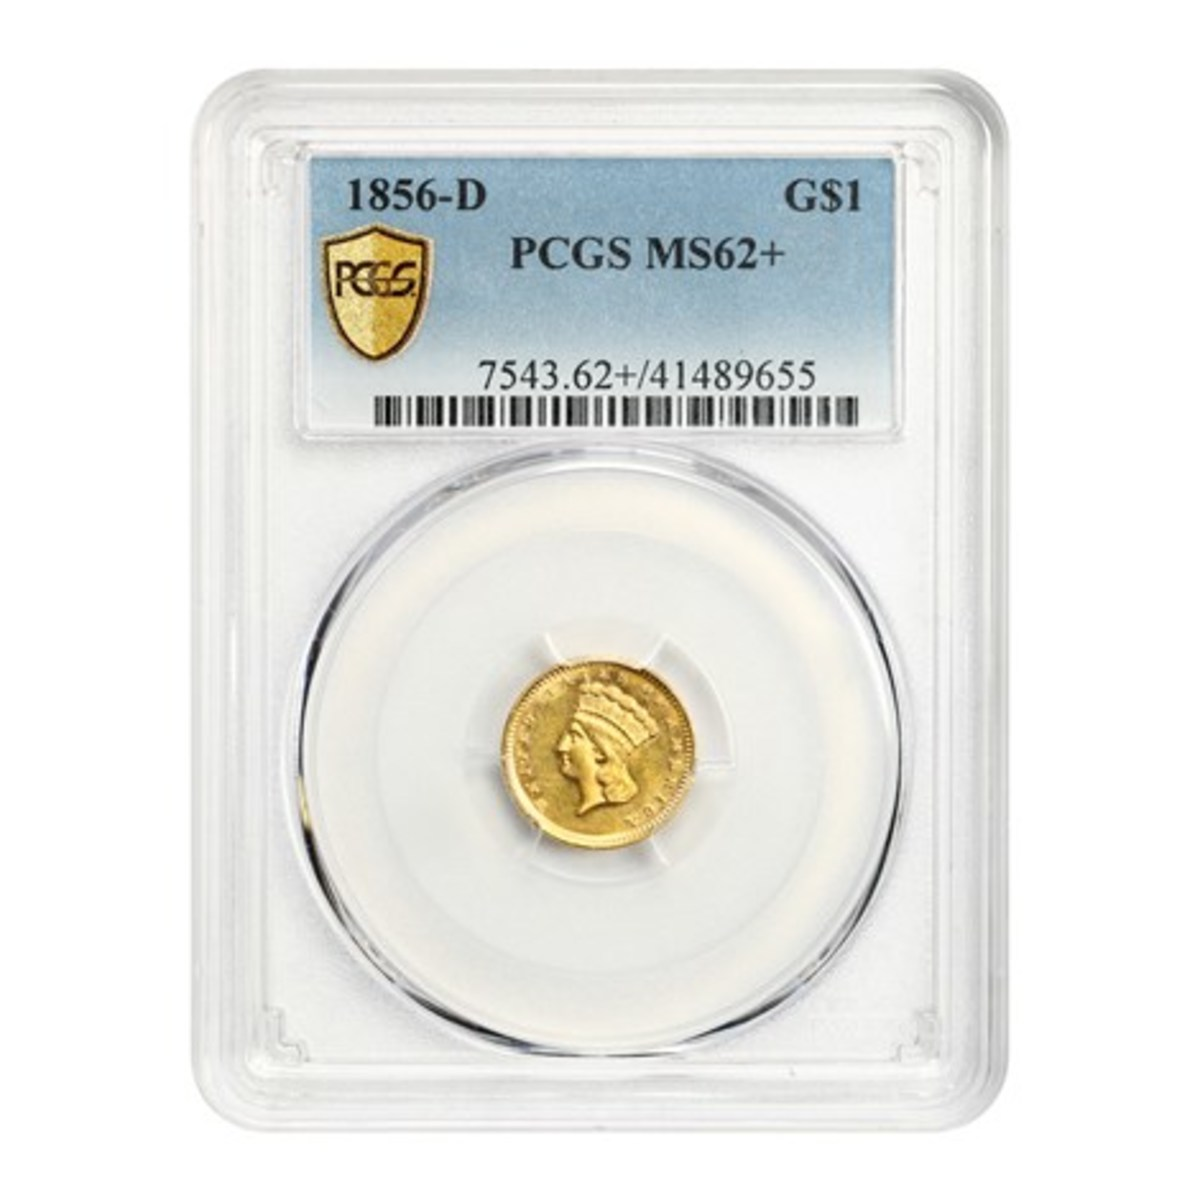 1856-D gold dollar graded MS-62+ by Professional Coin Grading Service (PCGS).